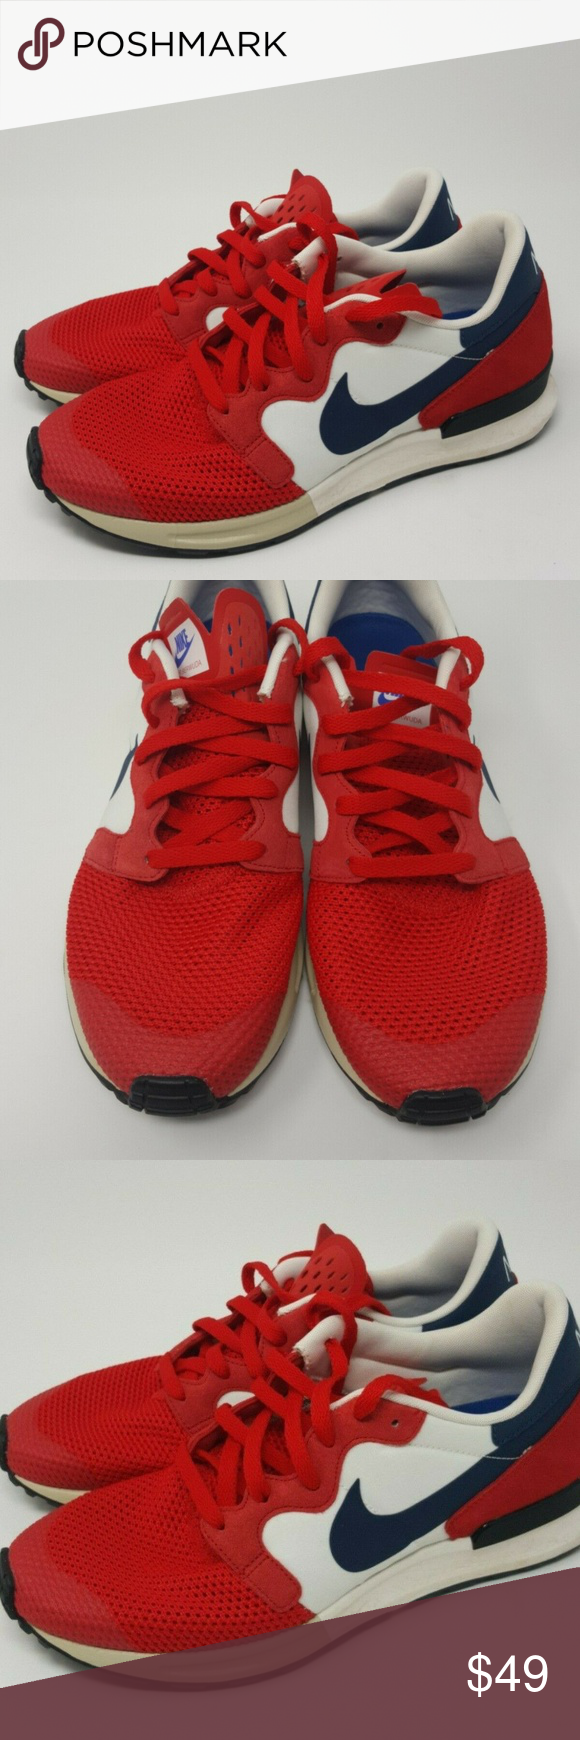 Nike Air Berwuda Red Retro Running Shoes Sz 10 Retro Running Shoes Nike Nike Air